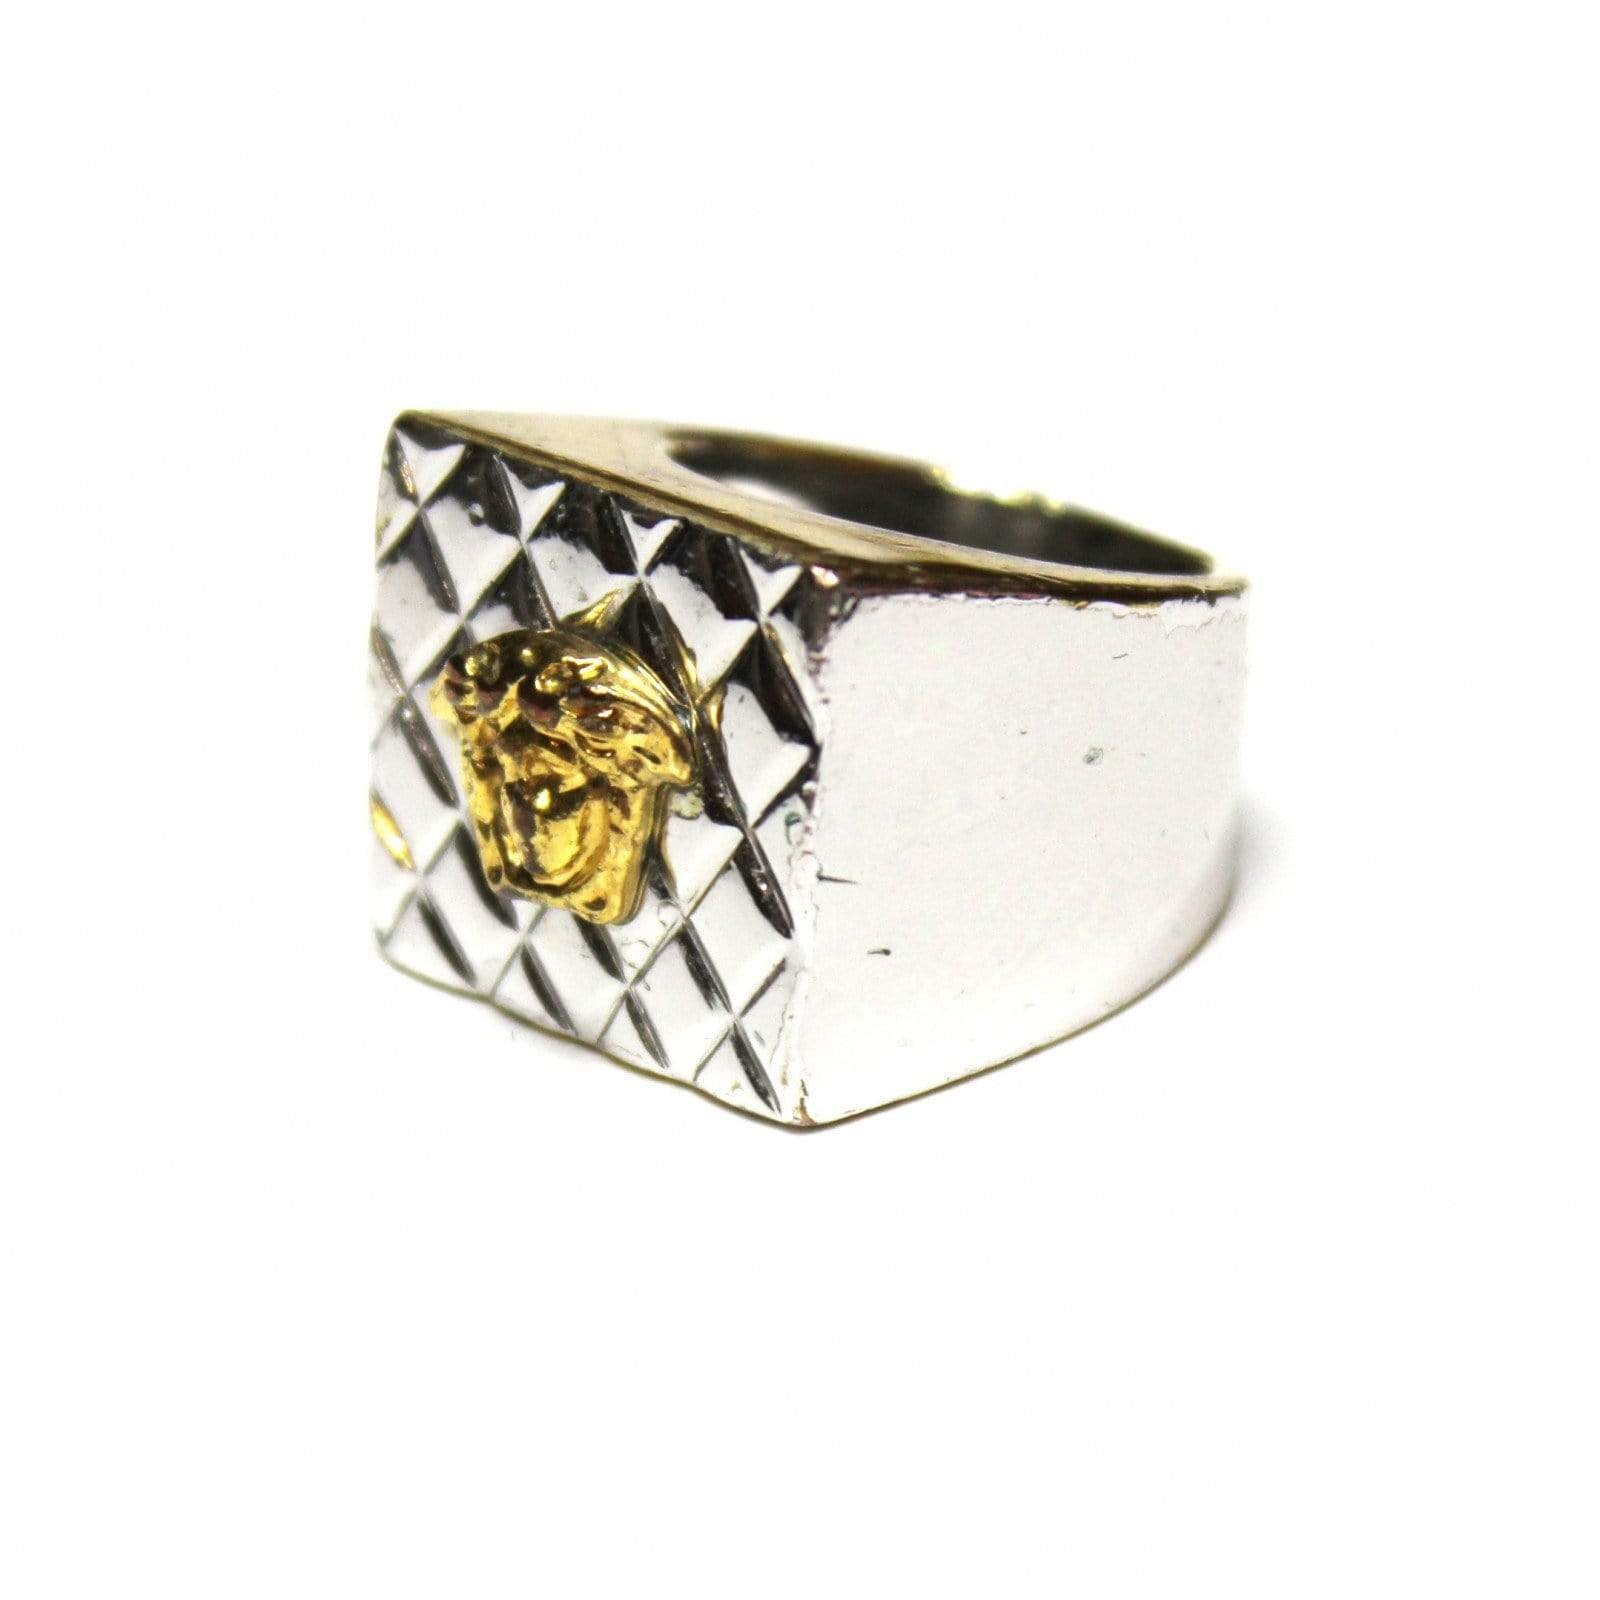 Vintage Silver/ Gold Quilted Gianni Versace Medusa Head Pinky Ring RSTKD Vintage